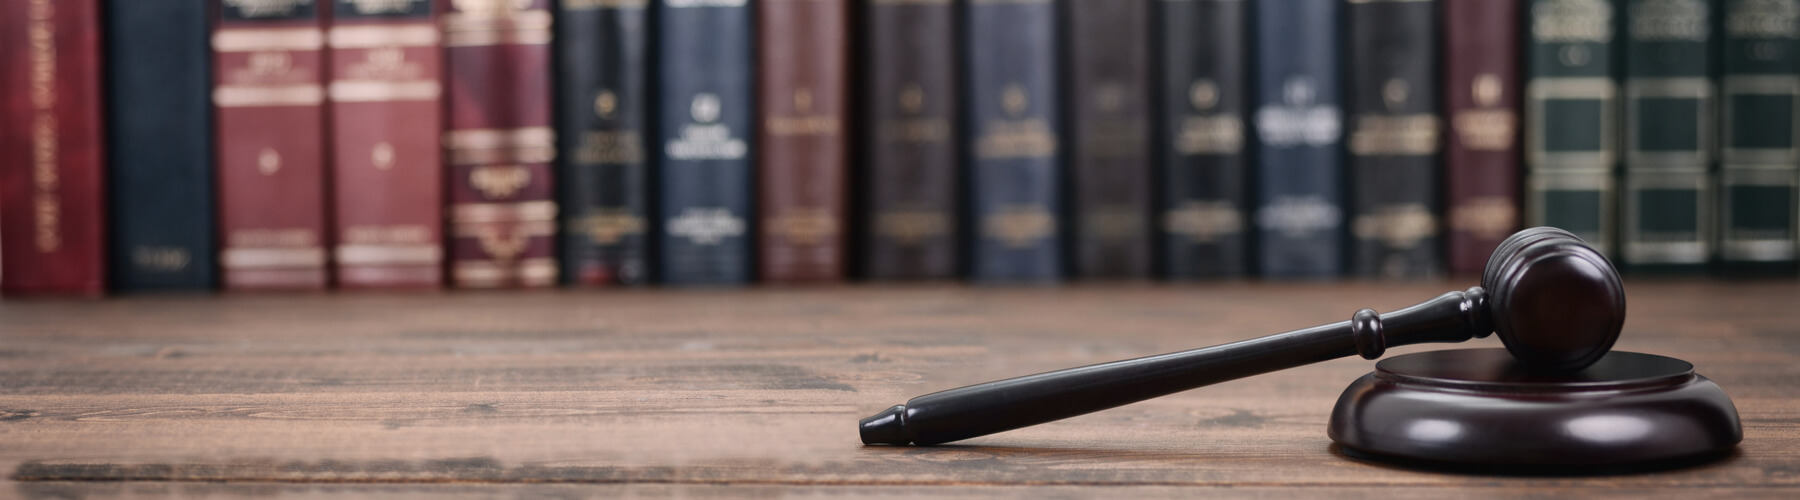 Law and Justice, Legality concept, Judge Gavel on a wooden background, Law library concept.